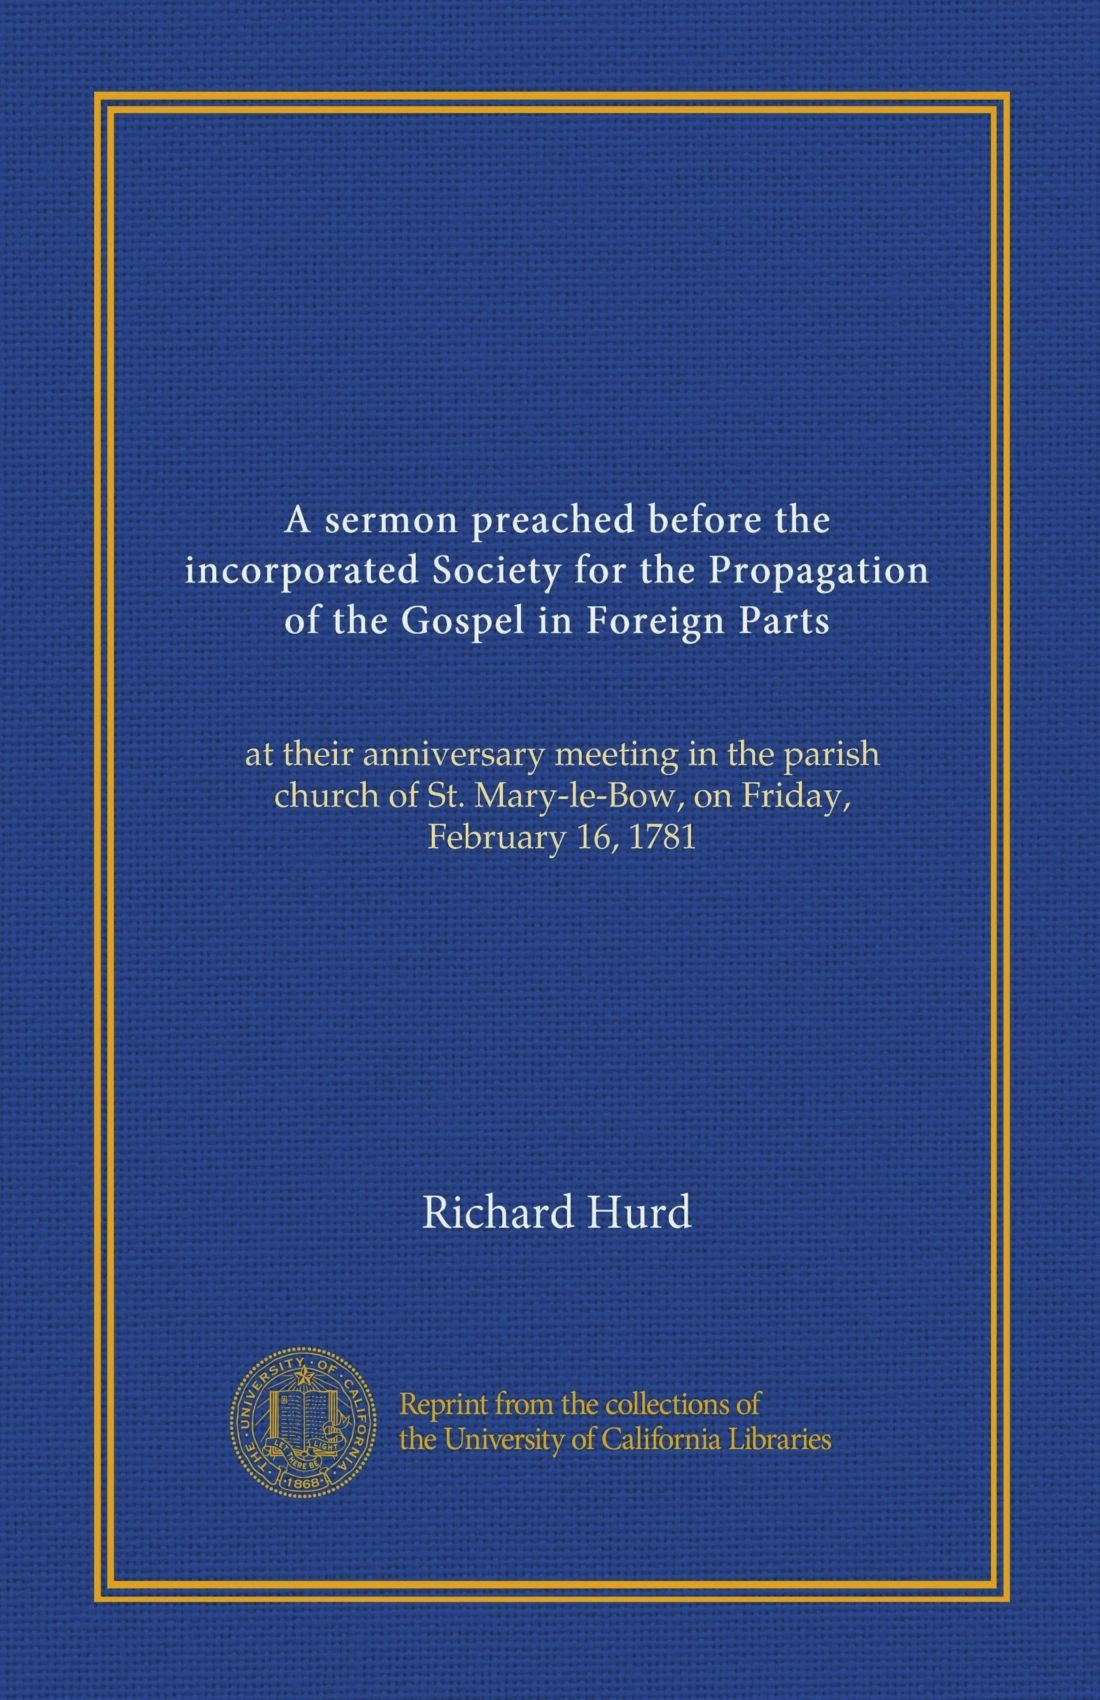 Download A sermon preached before the incorporated Society for the Propagation of the Gospel in Foreign Parts: at their anniversary meeting in the parish church of St. Mary-le-Bow, on Friday, February 16, 1781 PDF